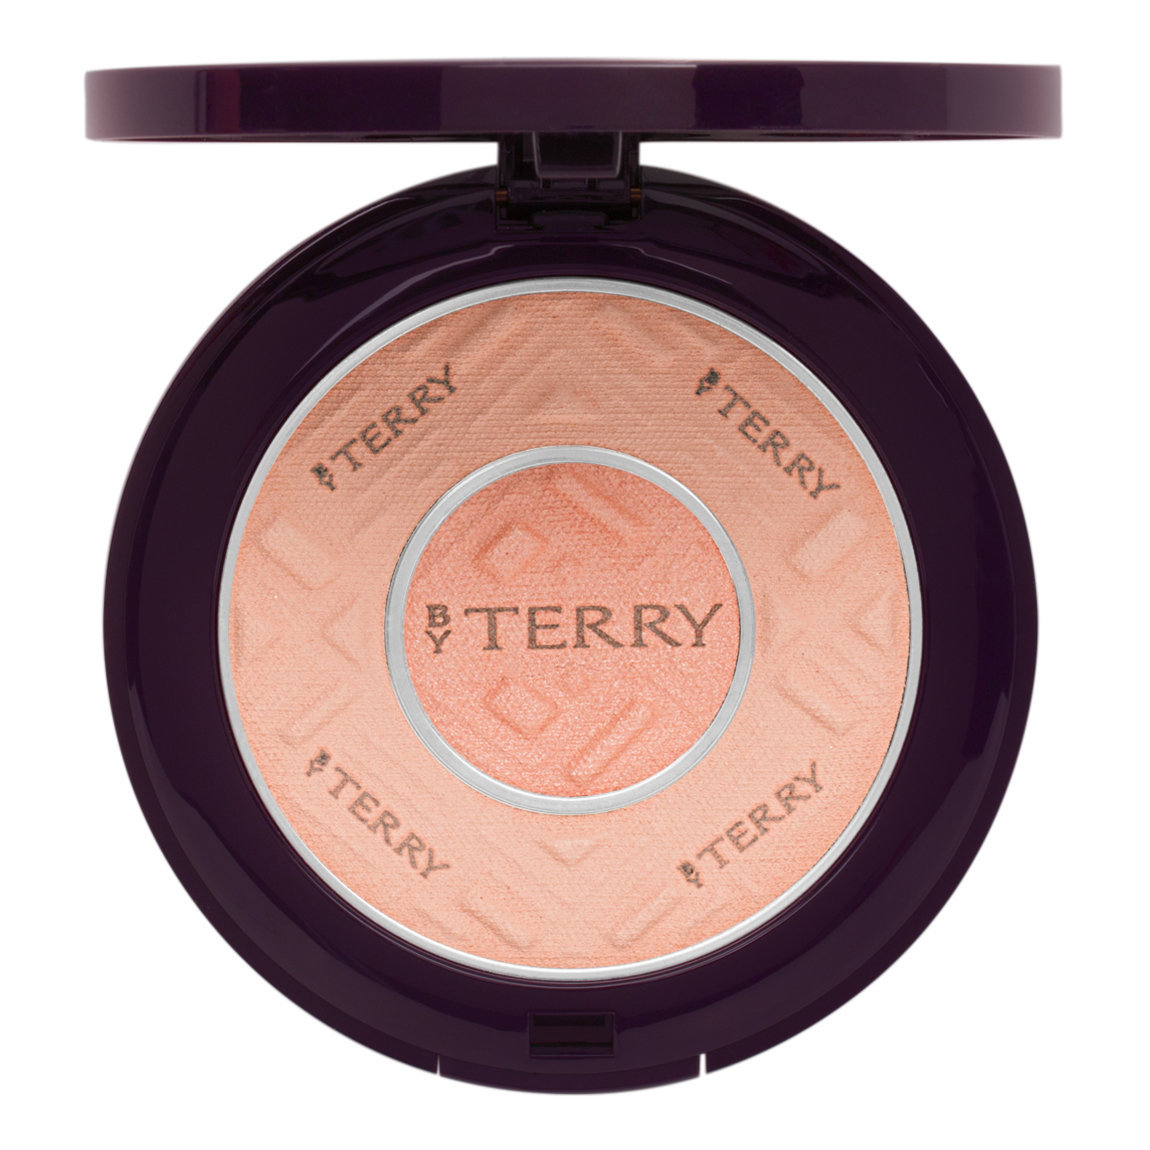 BY TERRY Compact-Expert Dual Powder 3 Apricot Glow product smear.